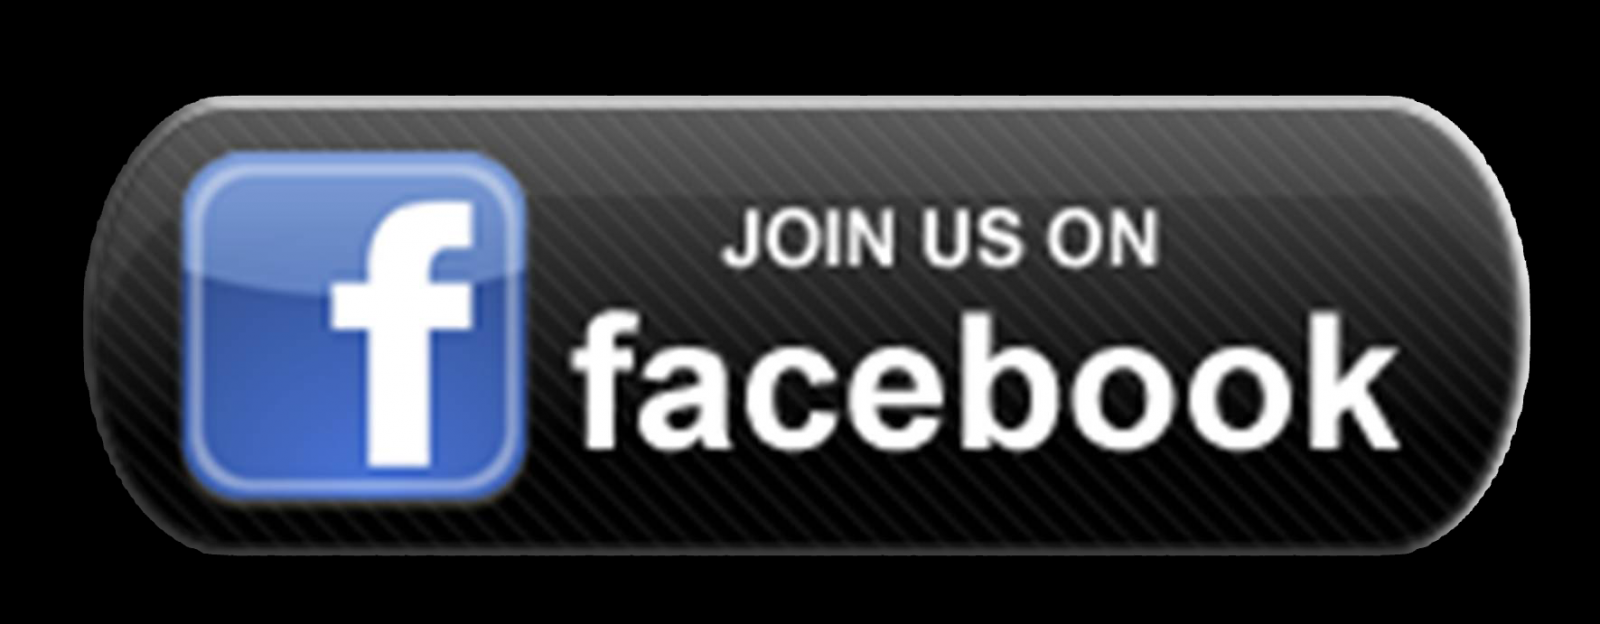 Join us on Facebook - Galena Body and Spirit in Galena IL.